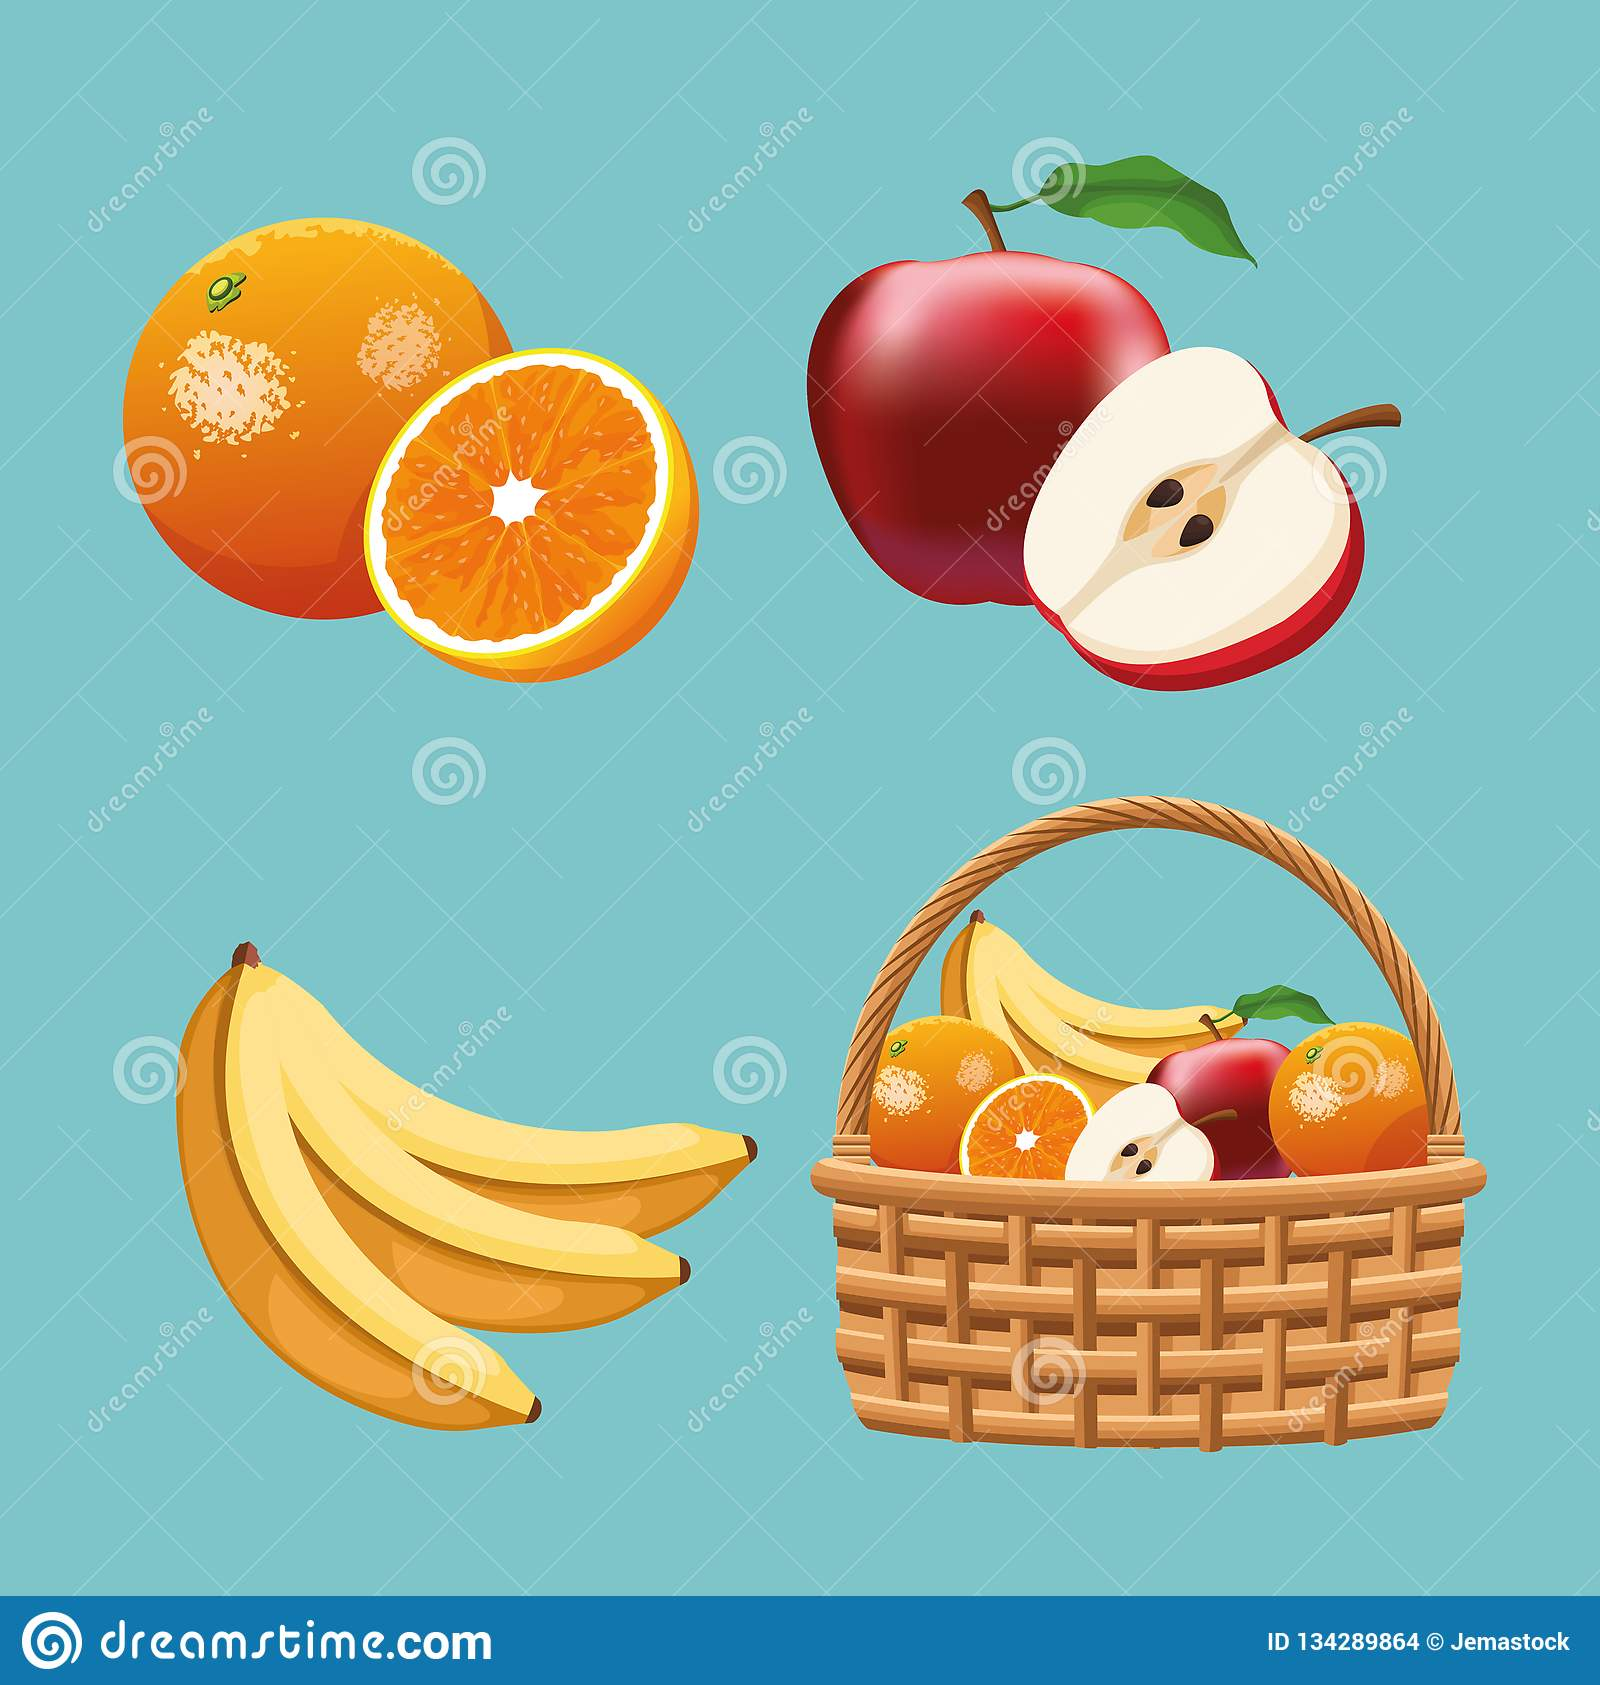 Designer Fruit Basket Fruits In Basket Stock Vector Illustration Of Freshness